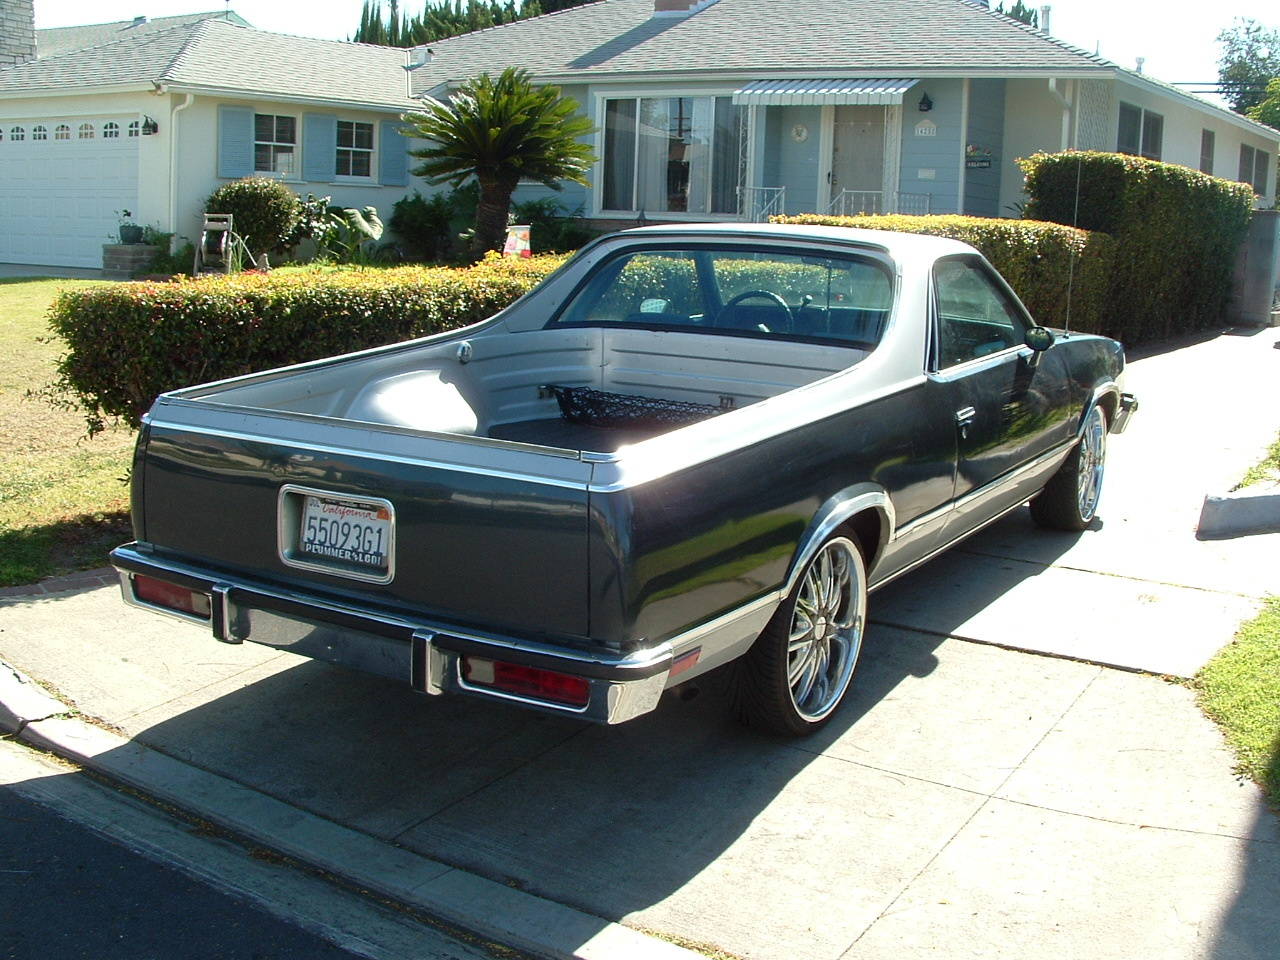 1985 Chevrolet El Camino Overview Cargurus 1970 Impala For Sale Craigslist